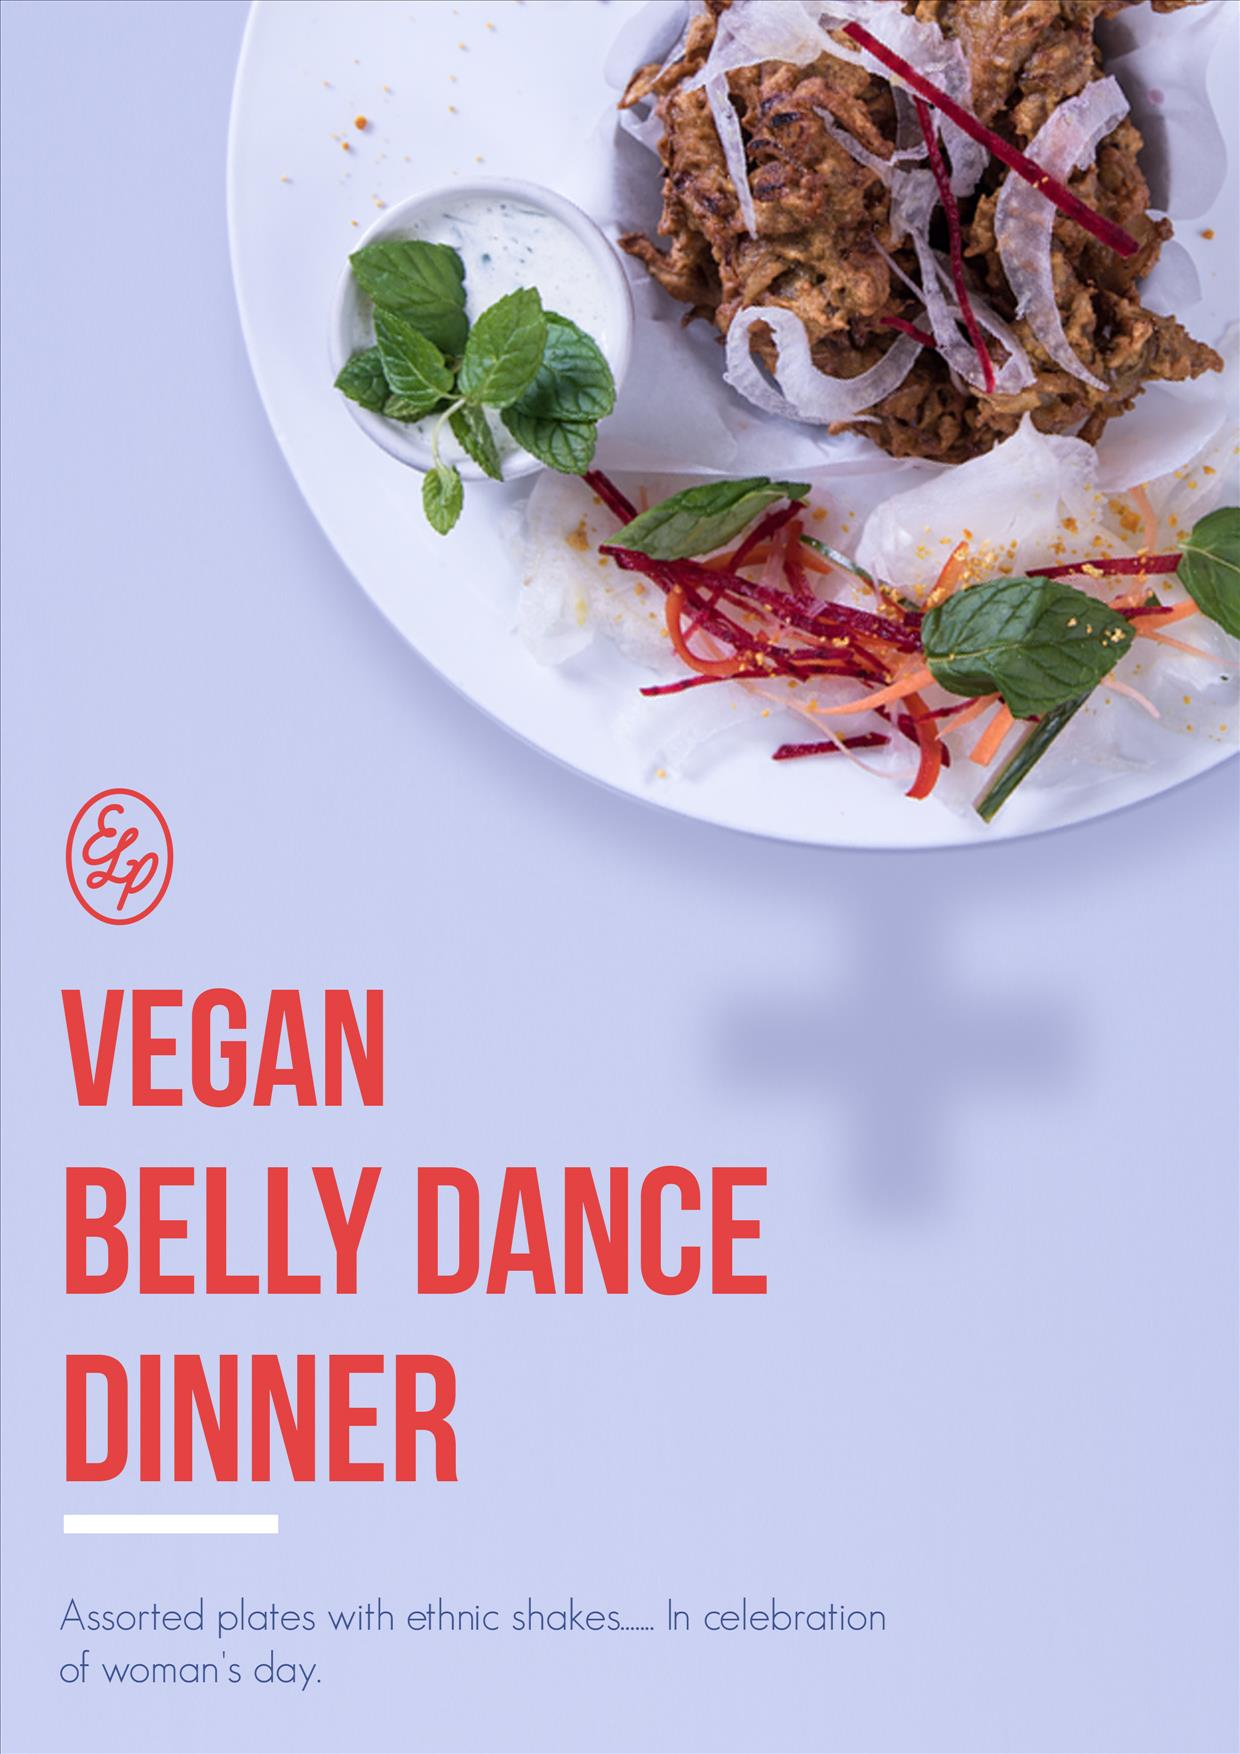 Vegan Belly Dance Dinner - Assorted plates with ethnic shakes....... In celebration of woman's day. flyer